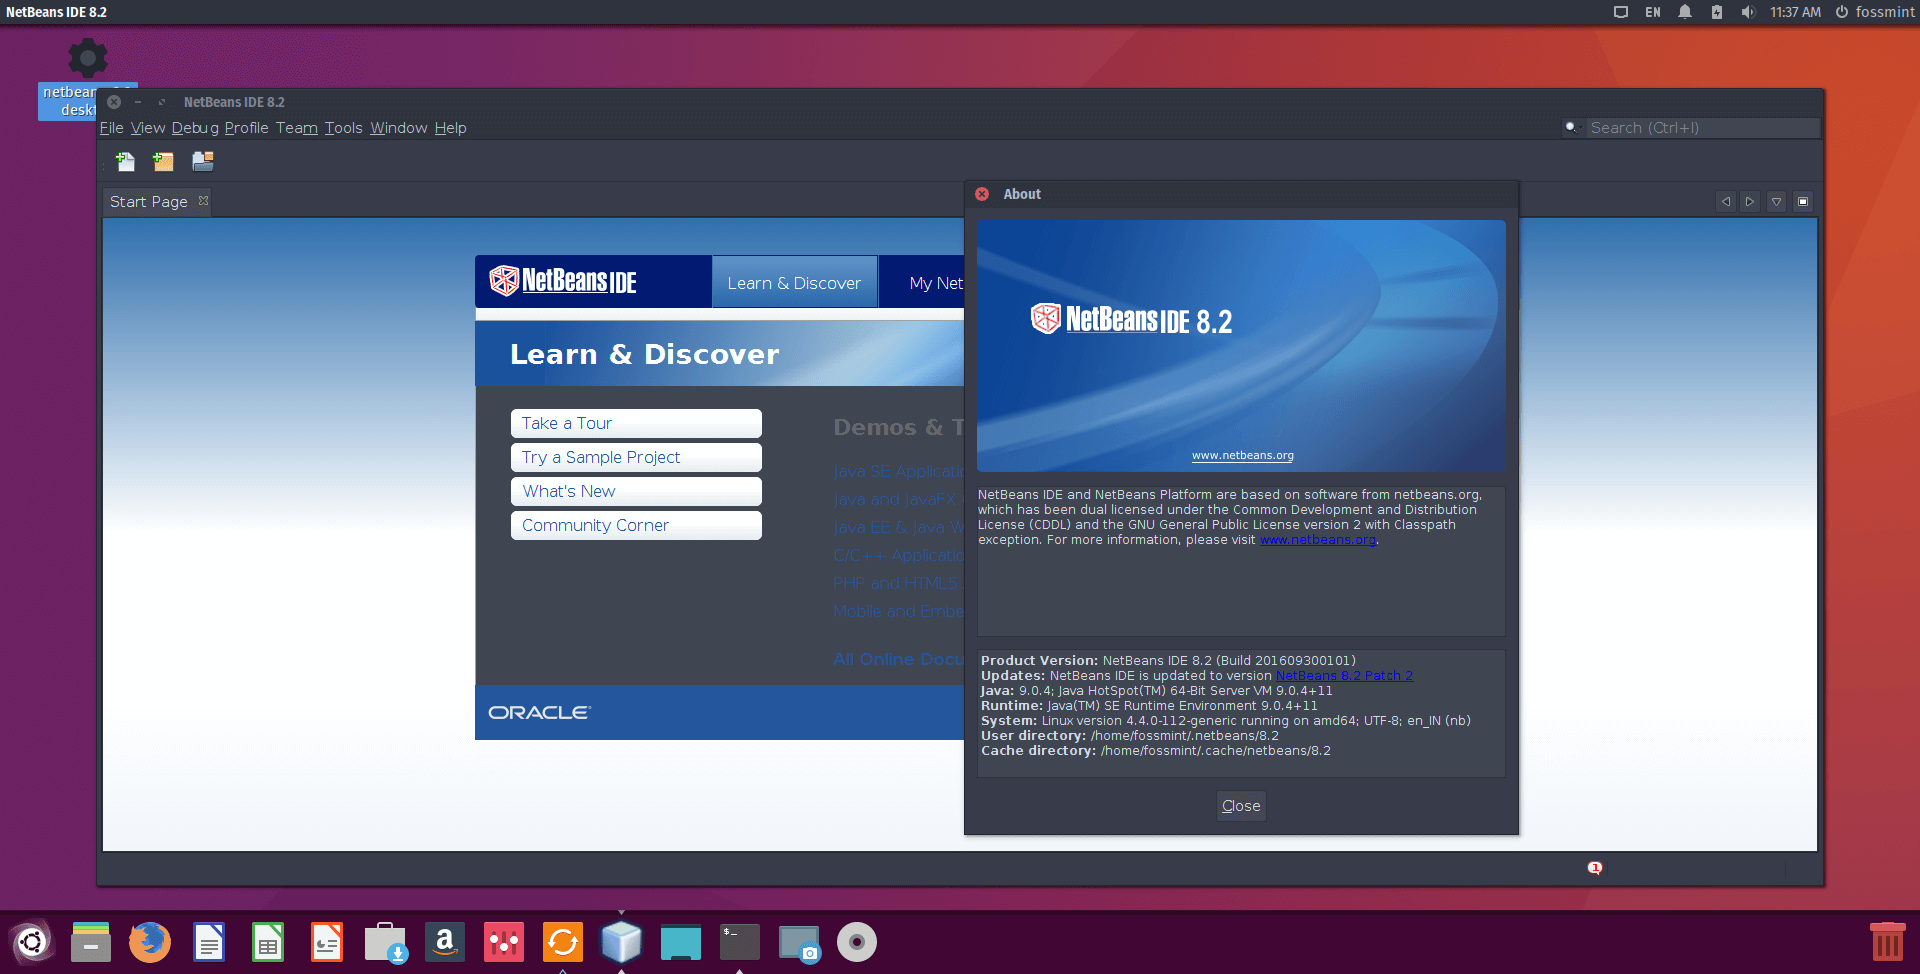 How To Install NetBeans IDE 8.2 In Debian, Ubuntu And Linux Mint